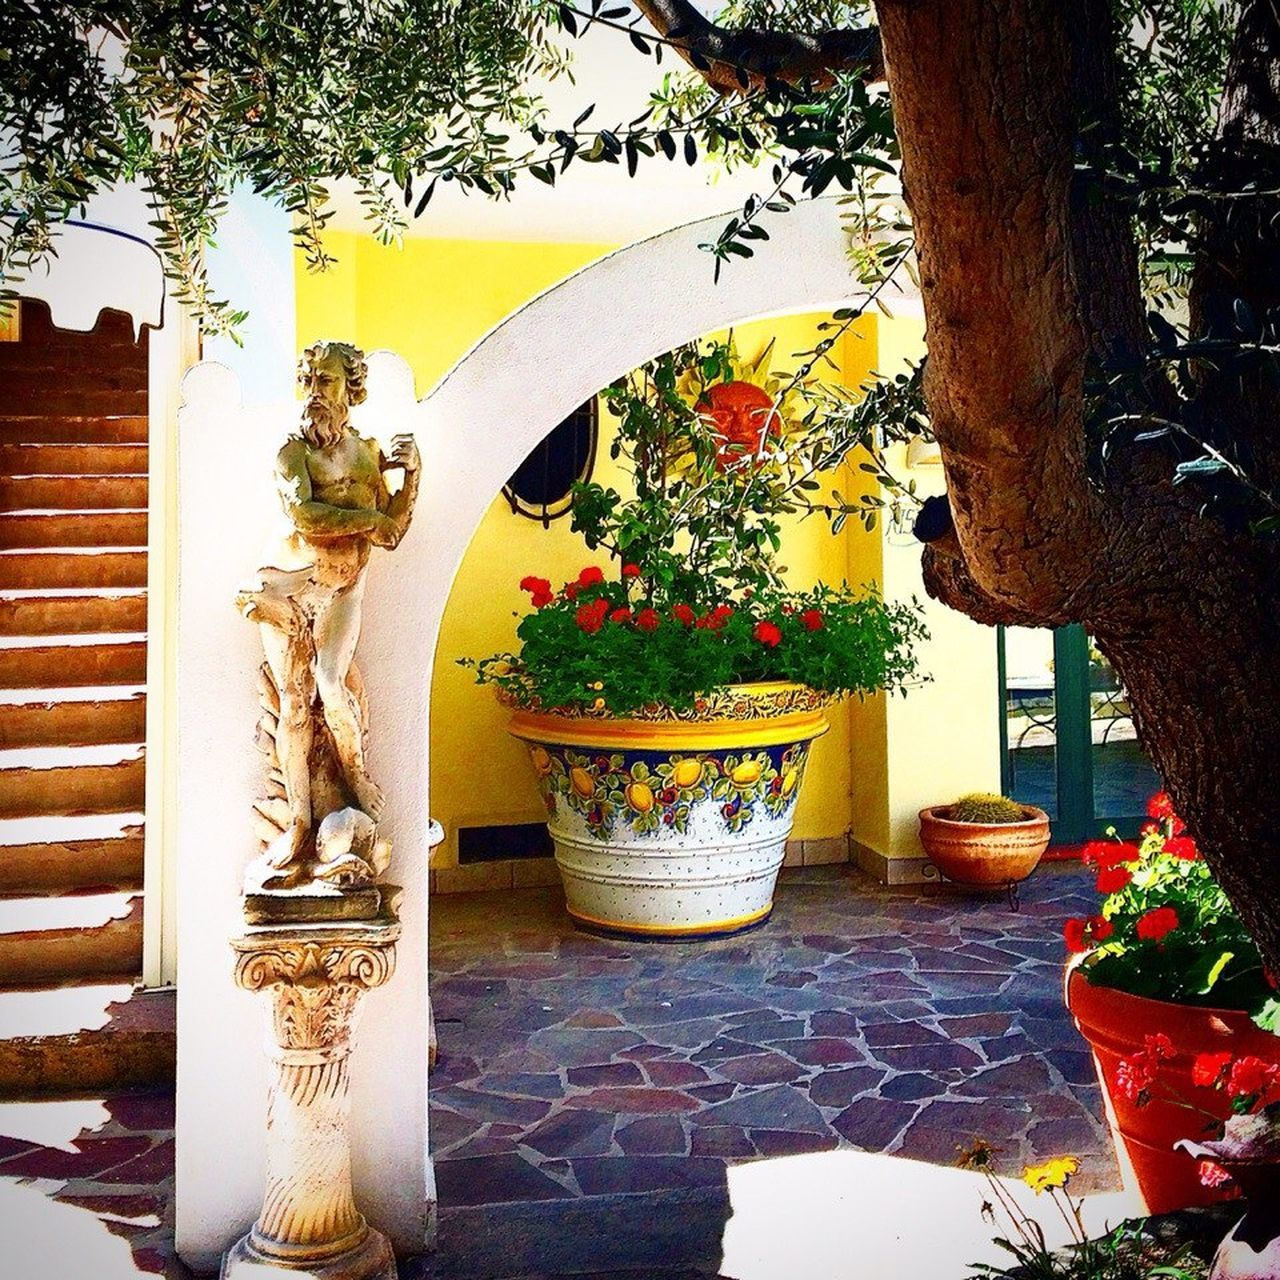 Statue Tree No People Indoors  Close-up Day Hotel Hot Day Stairs Napoli Italy Ischia Tranquility Backgrounds Built Structure Yard